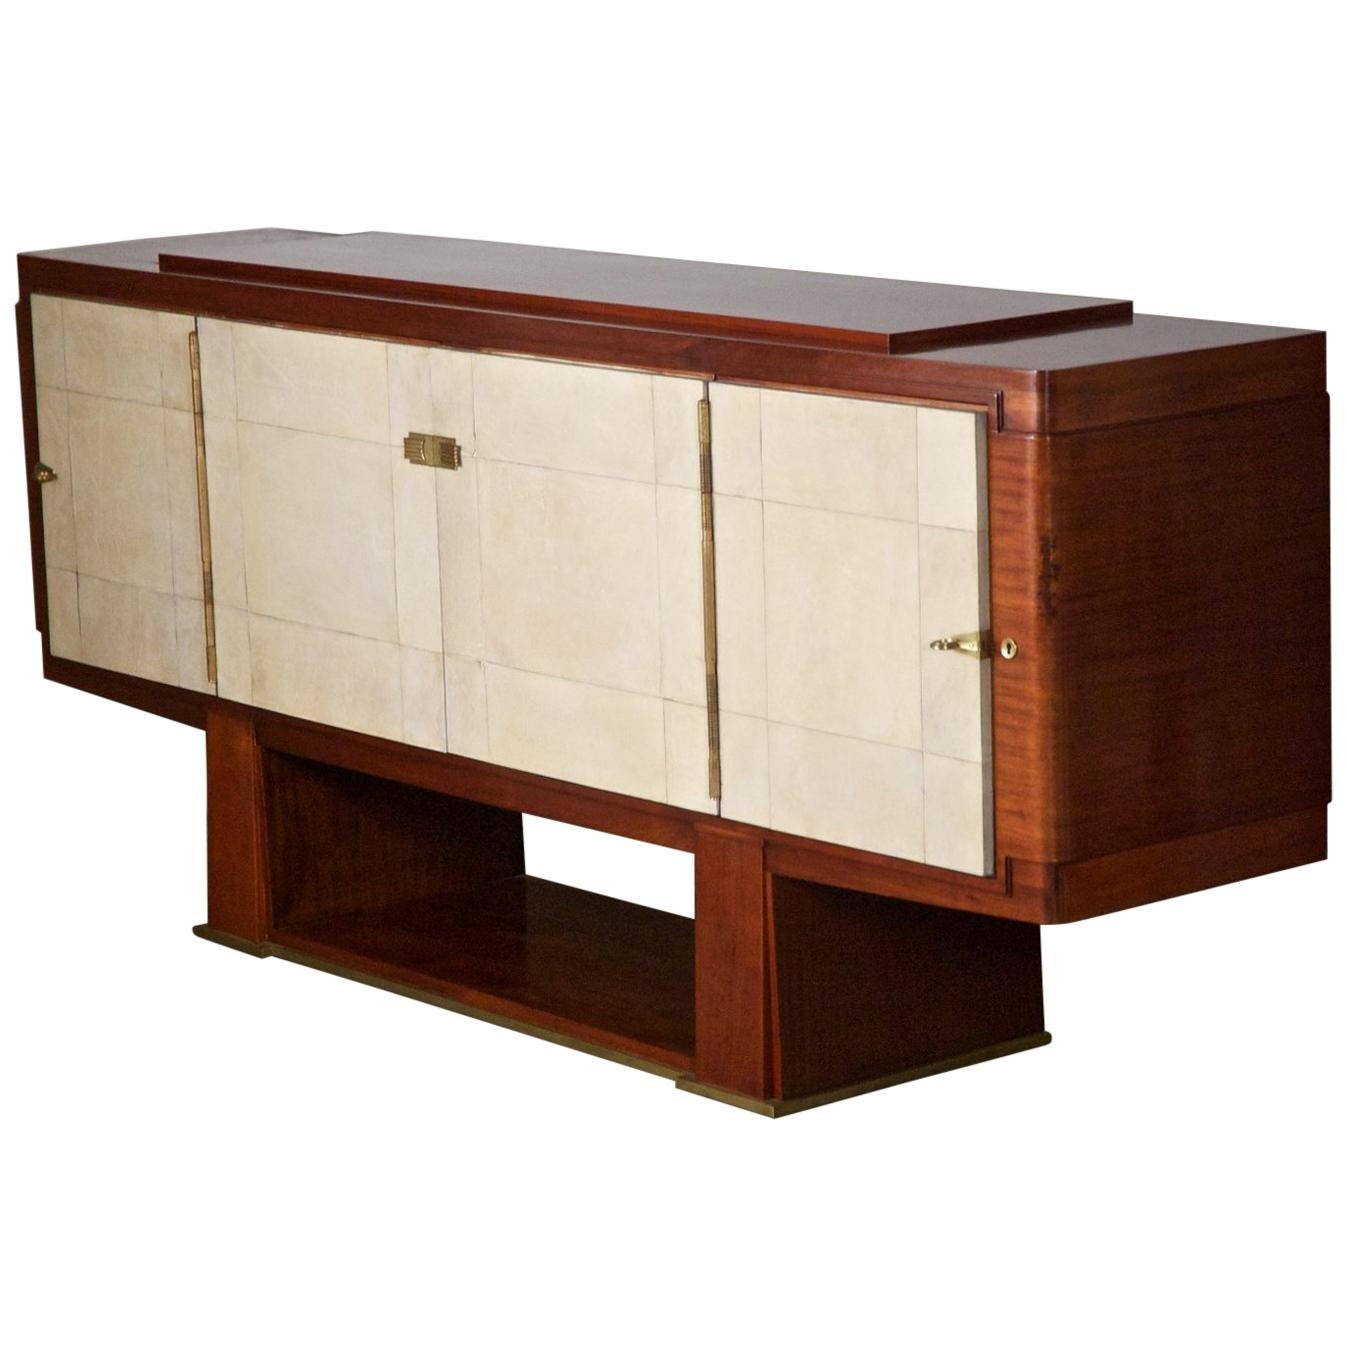 French Art Deco Cabinet by Maxime Old, Rosewood with Parchment Doors